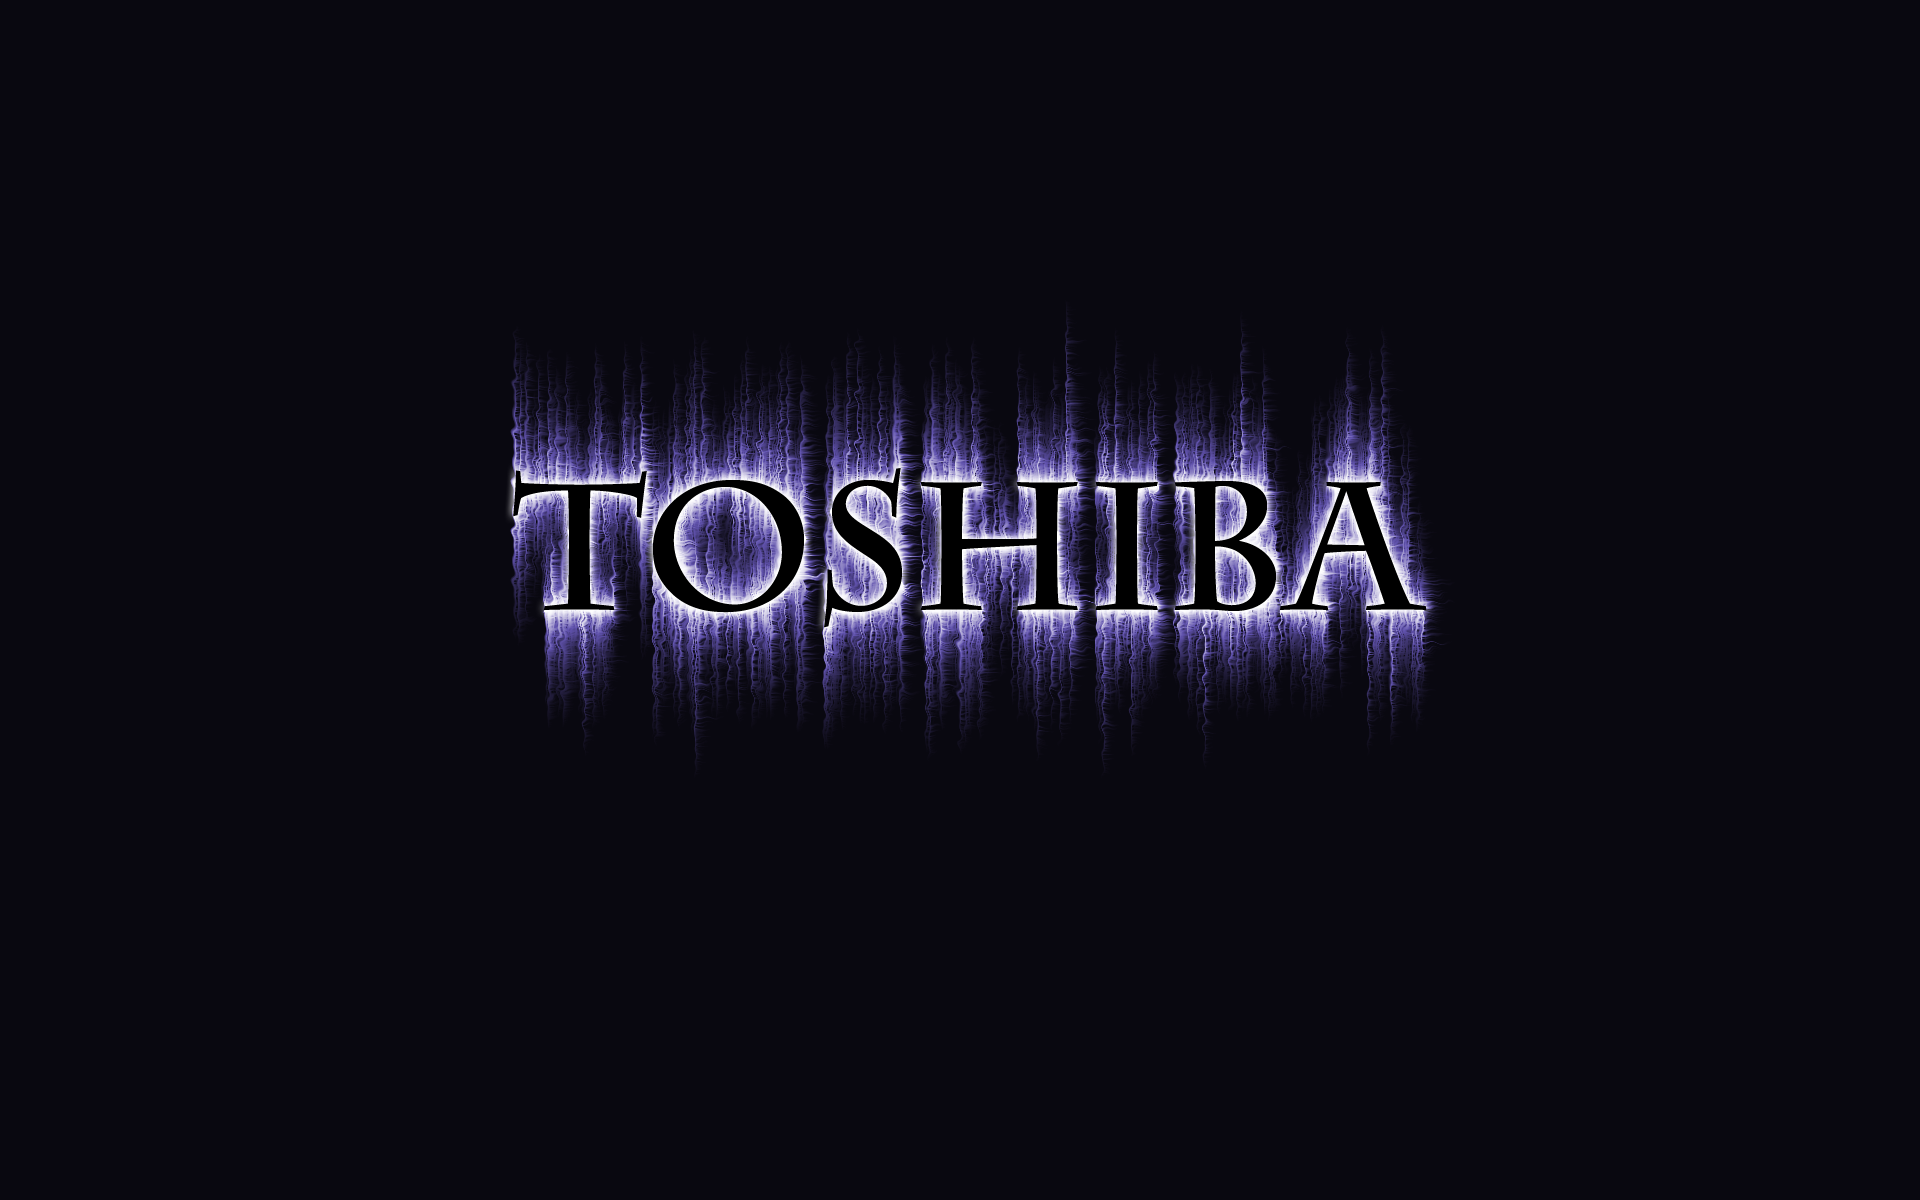 toshiba leading innovation  Desktop Wallpapers  Pinterest 1920x1200